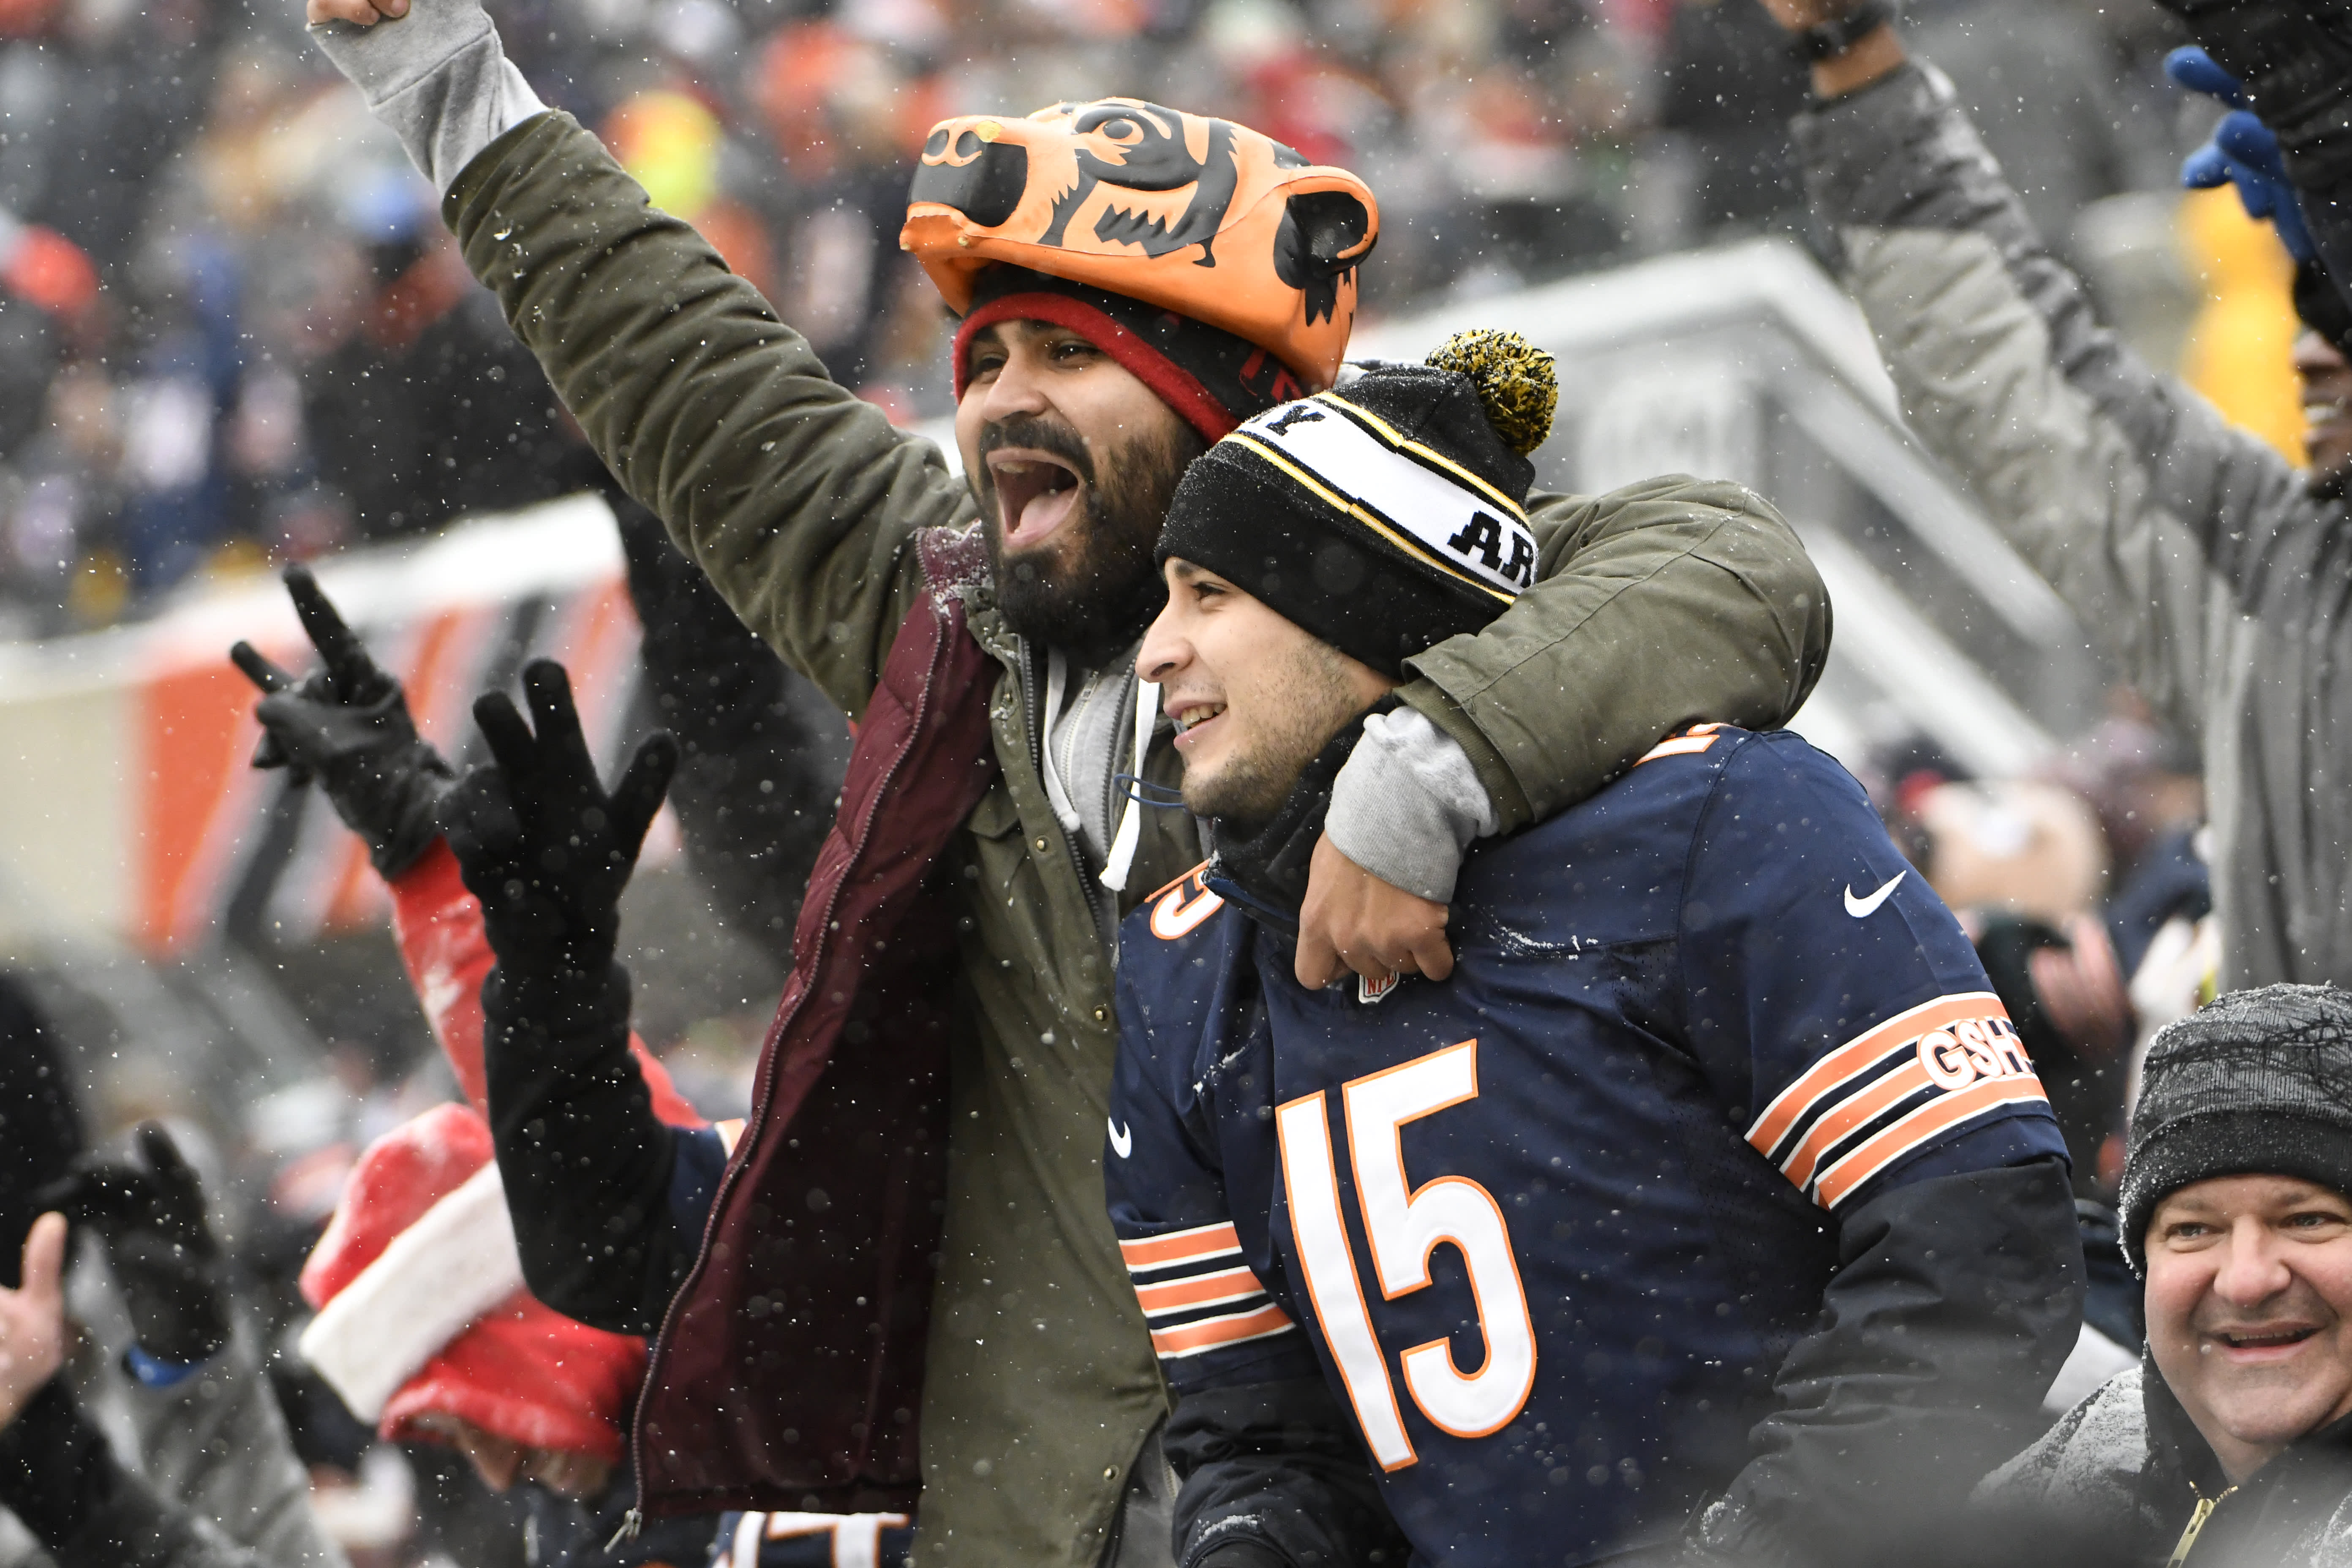 02622e0cc485 Fans are using Venmo to tip celebrities like Bears QB Mitchell Trubisky and  SNL s Michael Che